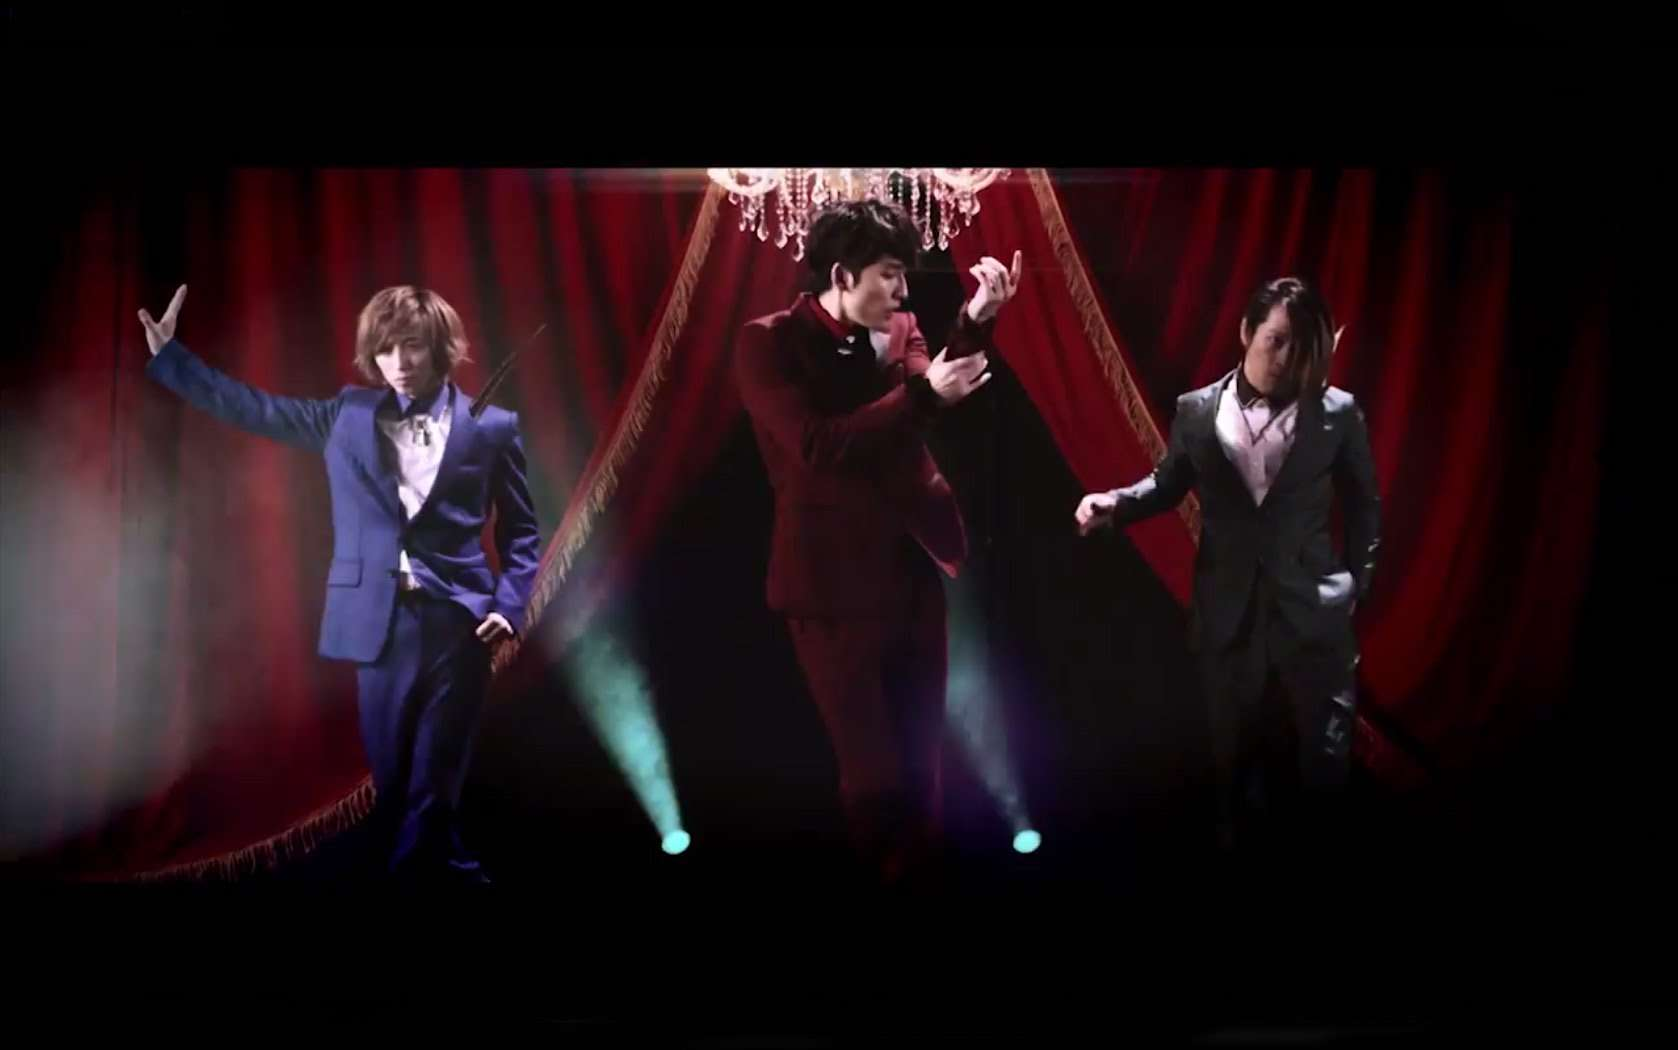 In Love With The Music / w-inds. - YouTube